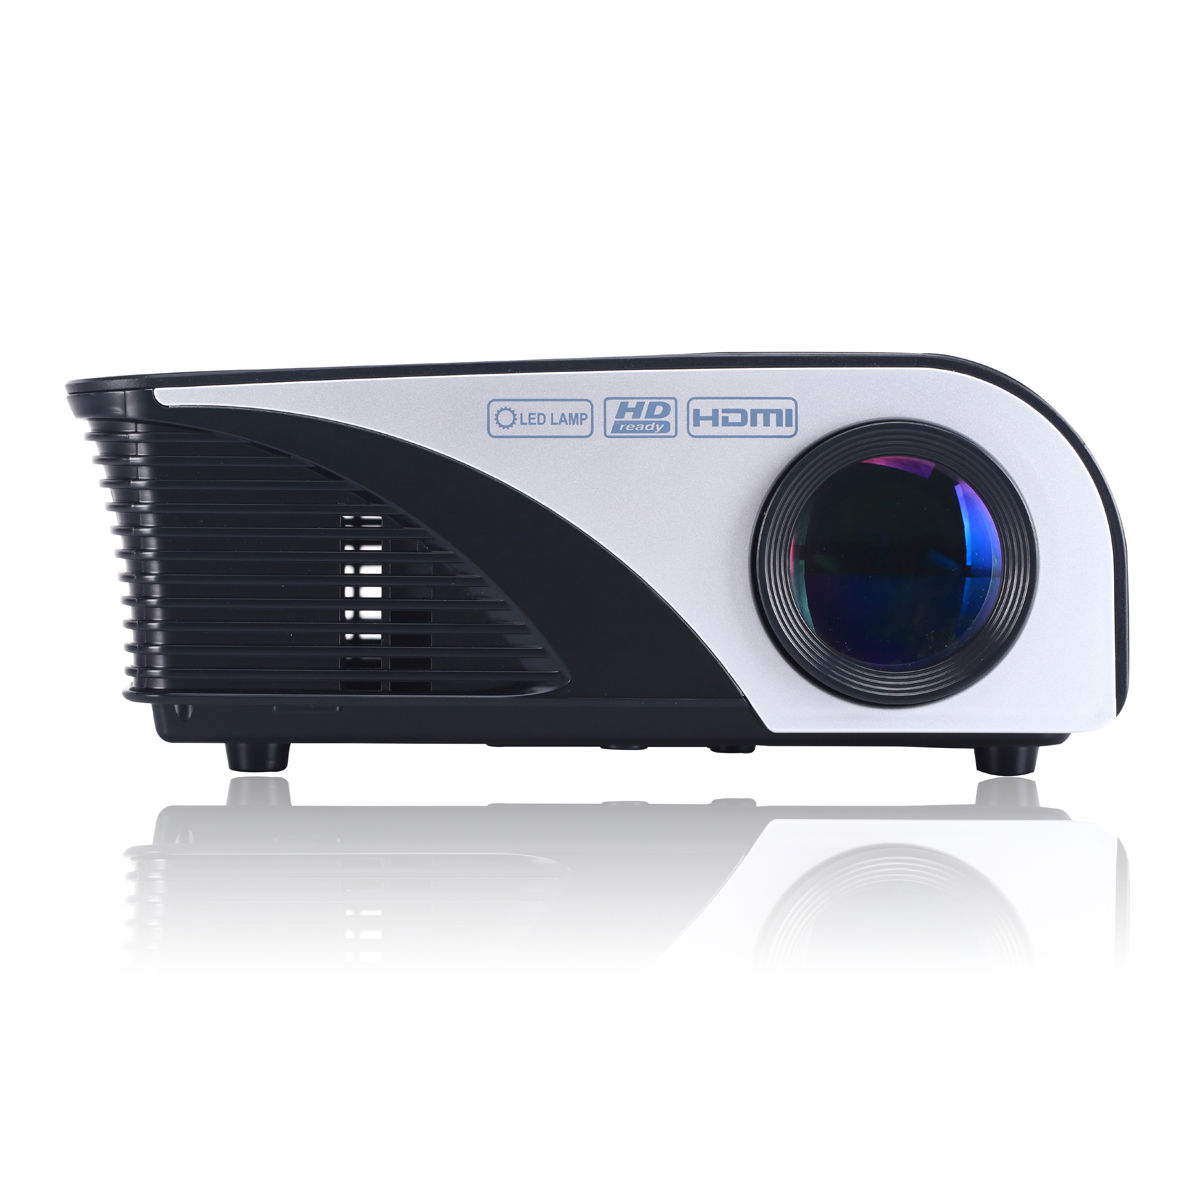 Rd 805b led mini projector home theater projectors 1200 for Hdmi pocket projector